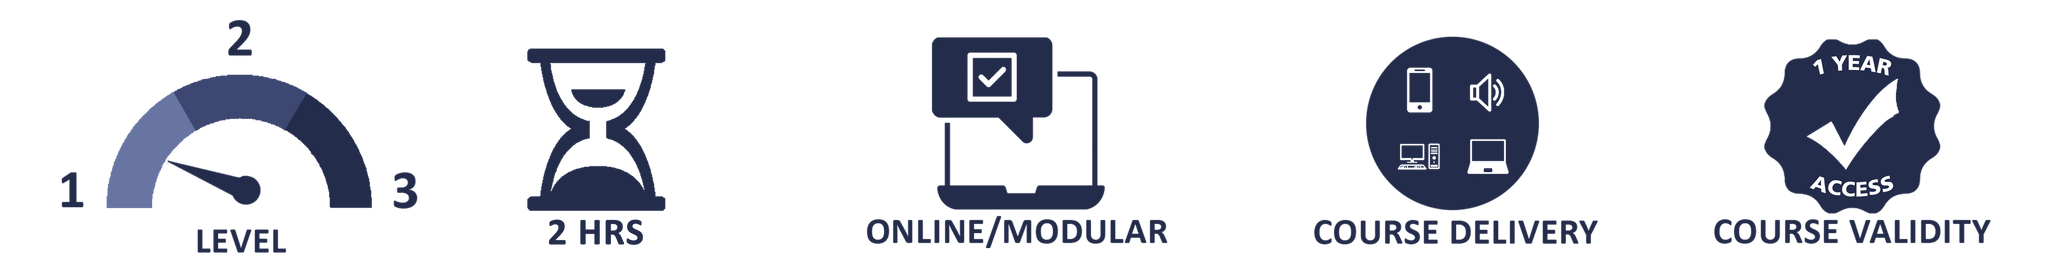 Promoting and Maintaining Own Mental Health and Well Being - Online Training Courses - The Mandatory Training Group UK -